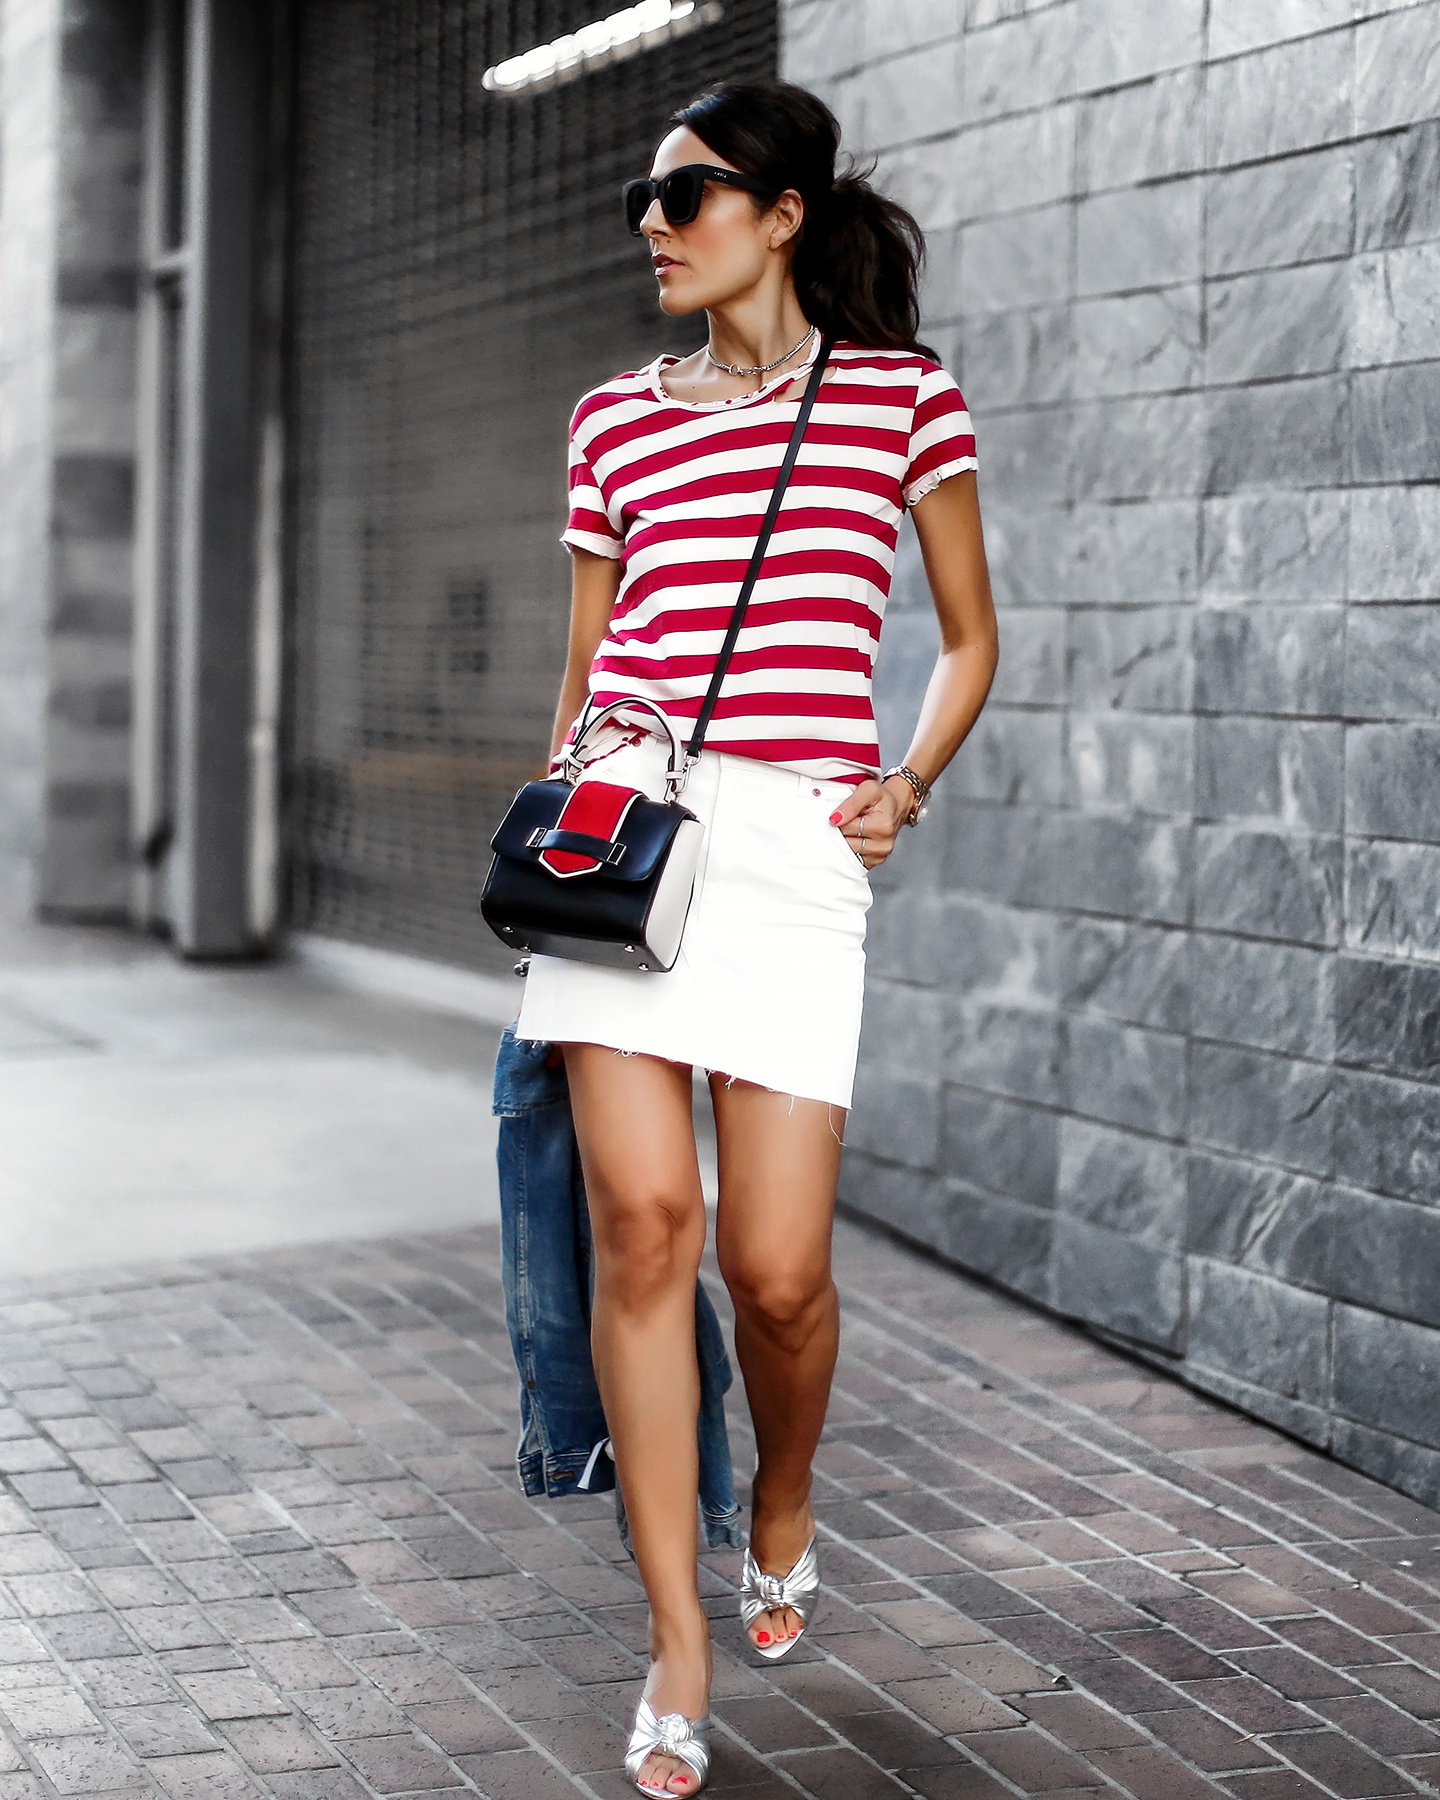 RTA_Striped_Tee_Topshop_Miniskirt_Loeffler_Randall_Silver_Mules_Fourth_of_July_Look.jpg